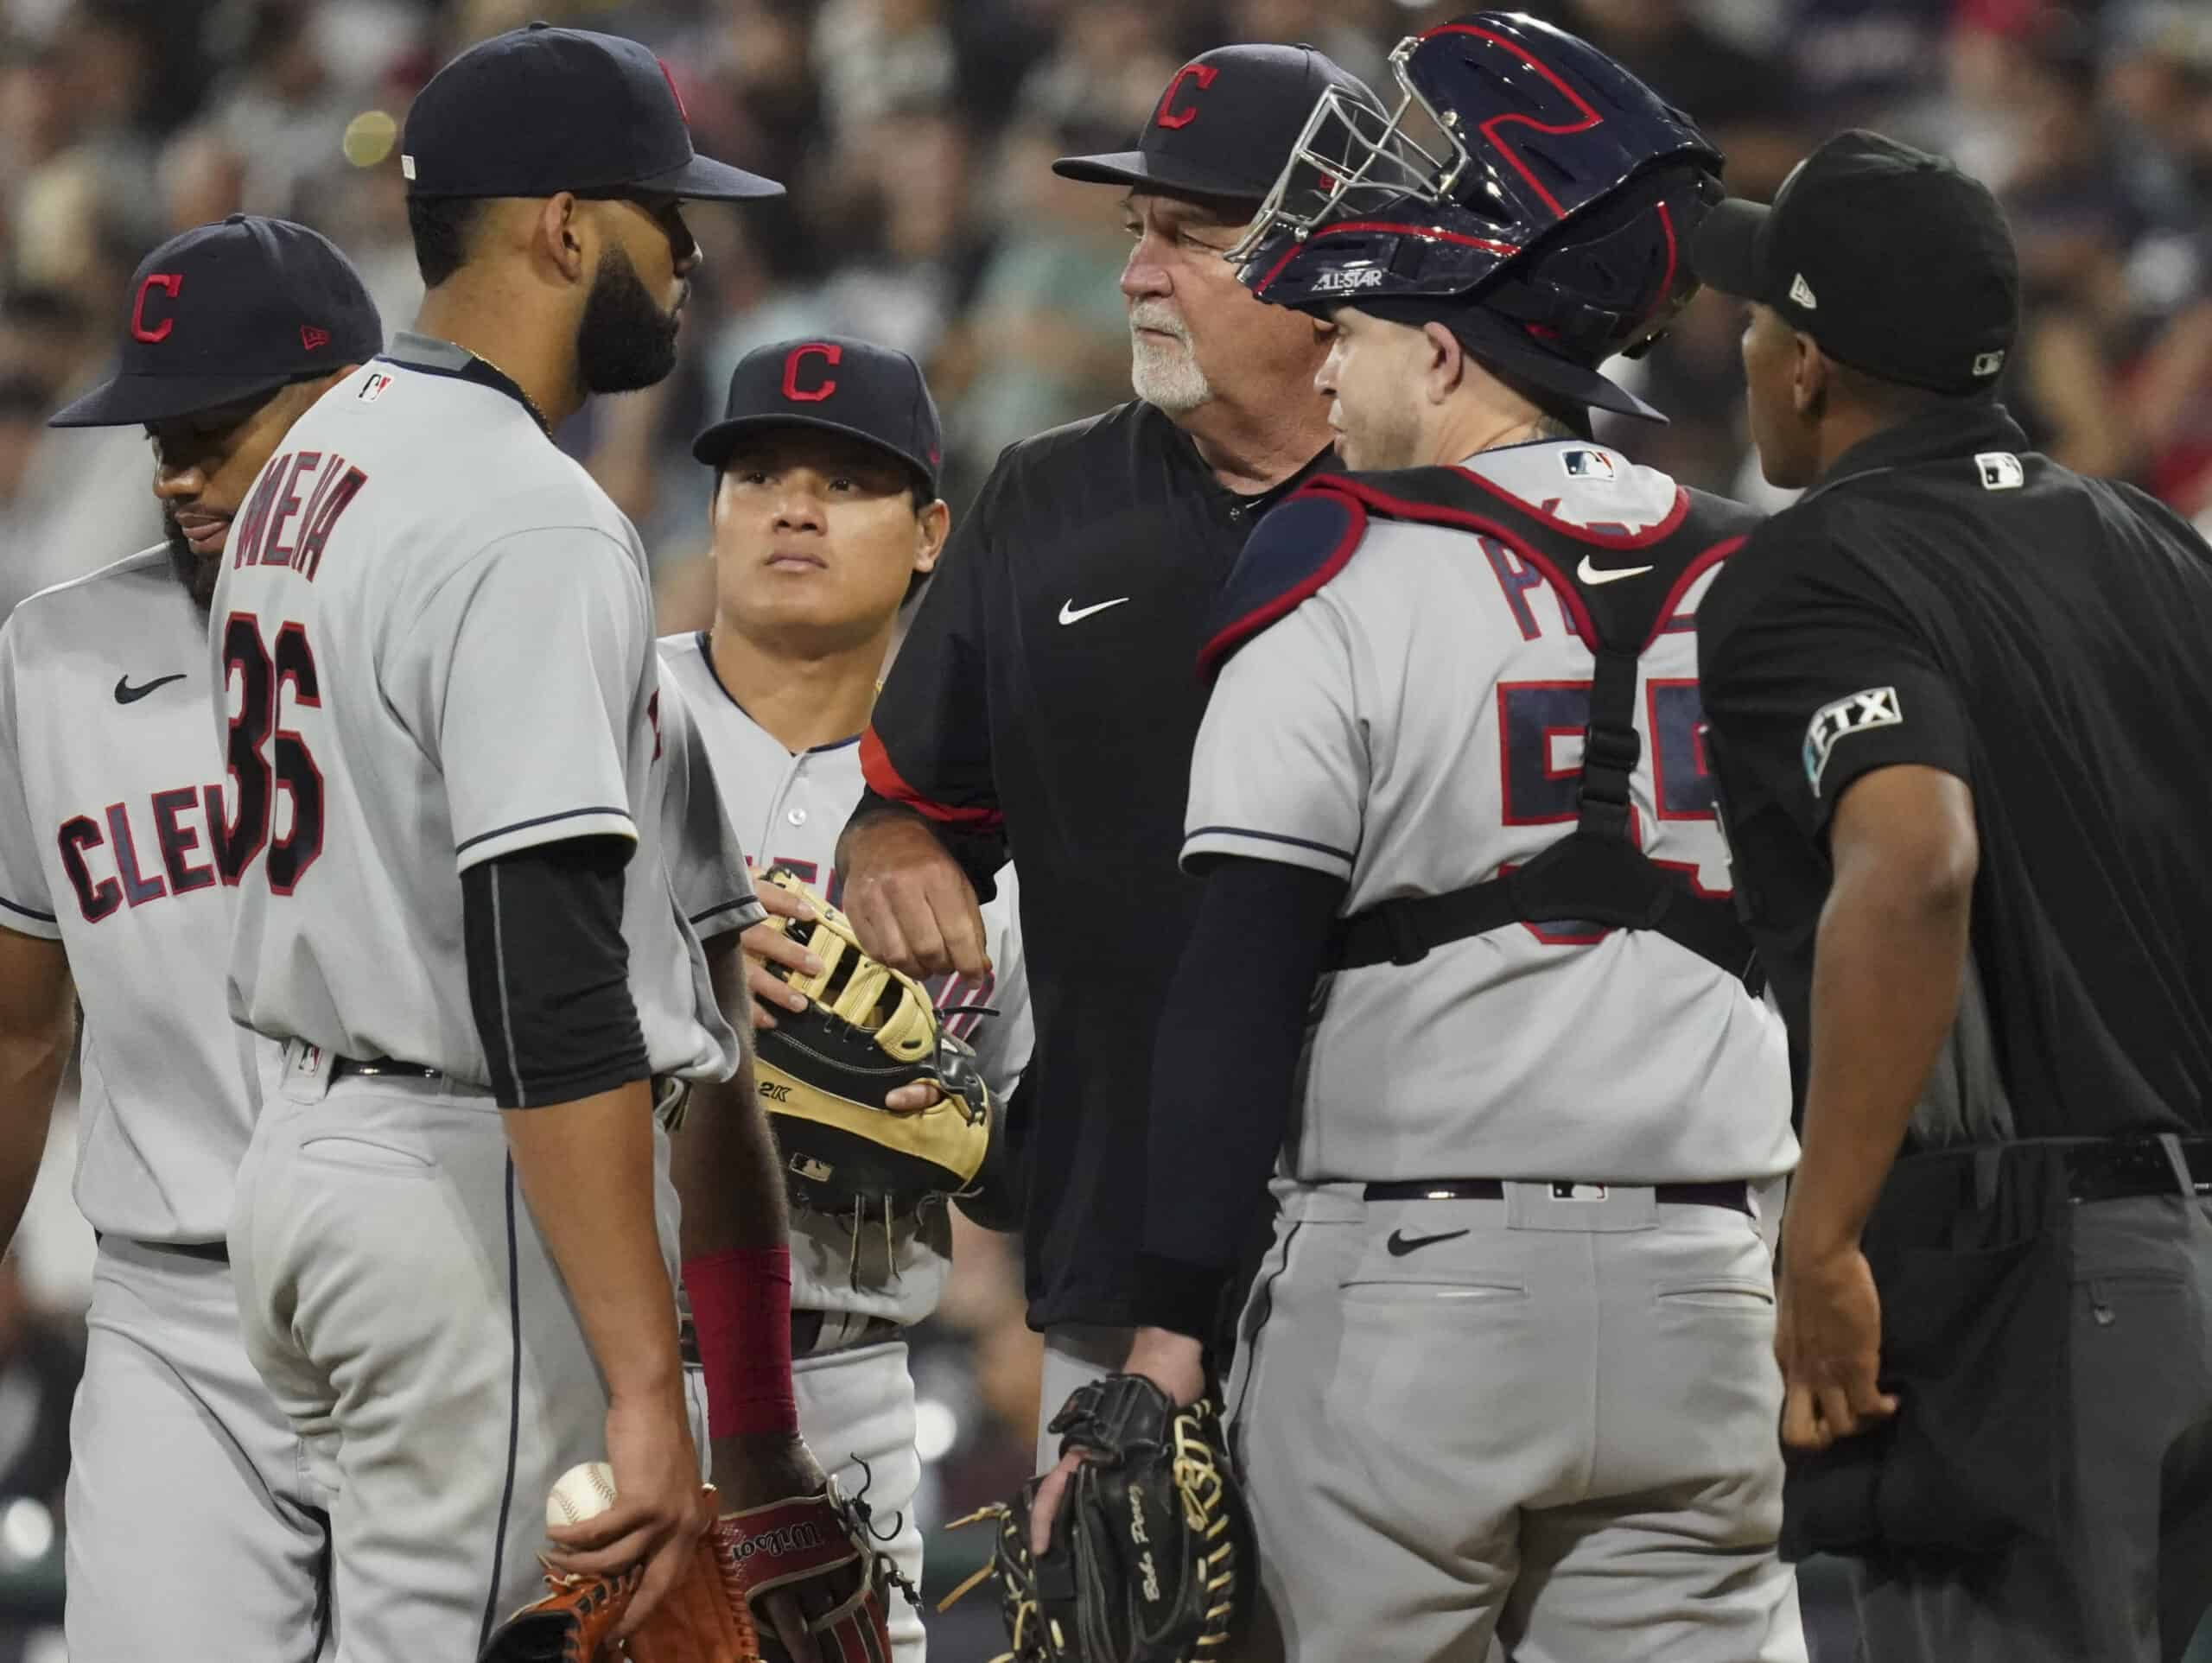 Pitching coach Carl Willis #51 of the Chicago White Sox talks with J.C. Mejia #36 of the Cleveland Indians during the fourth inning of a game against the Chicago White Sox at Guaranteed Rate Field on July 30, 2021 in Chicago, Illinois.